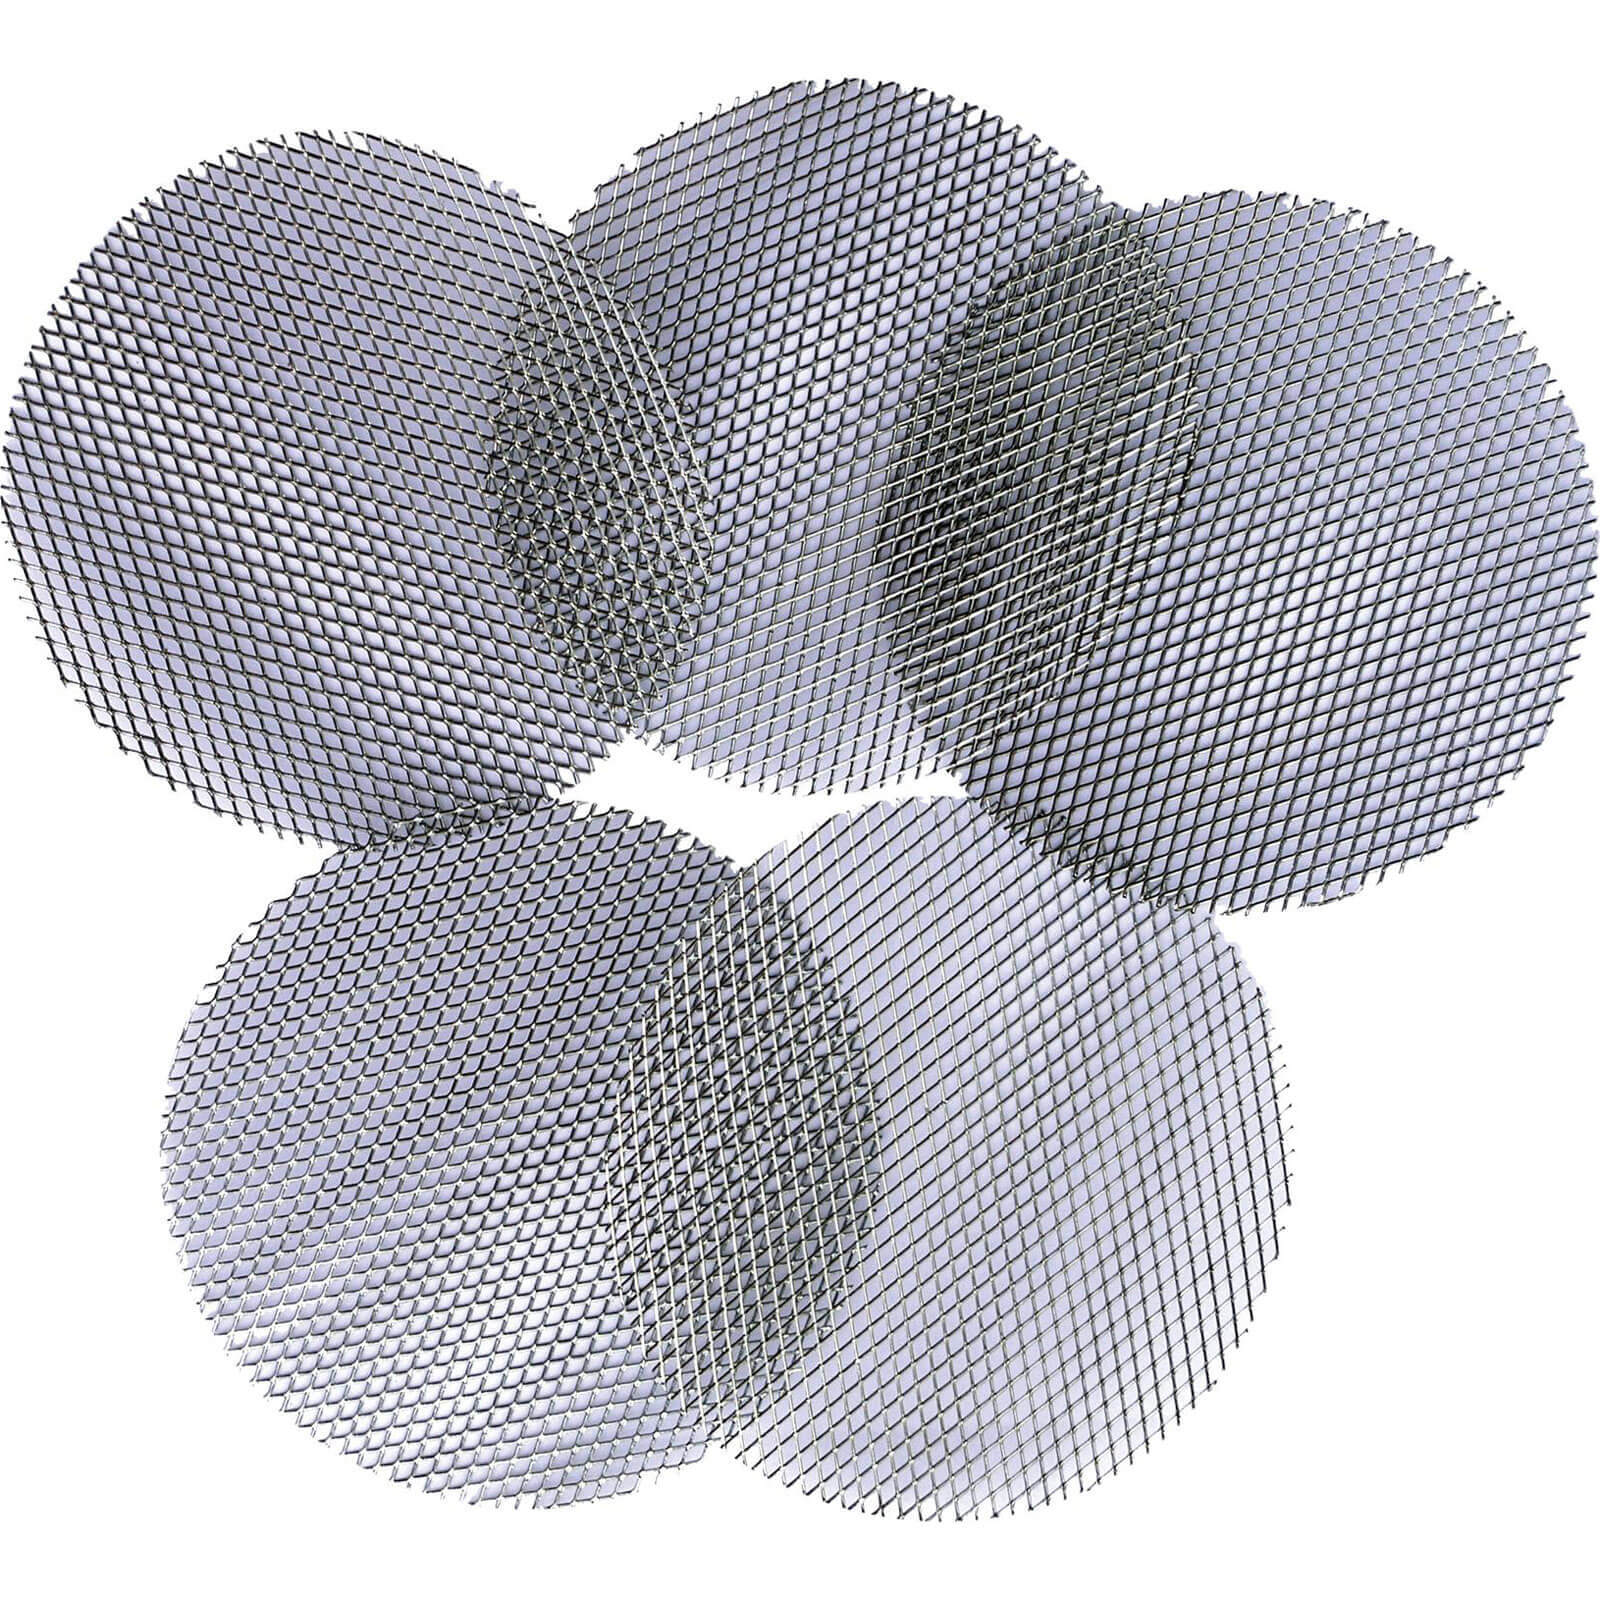 Image of Super Rod Cavity Master Mesh Plates